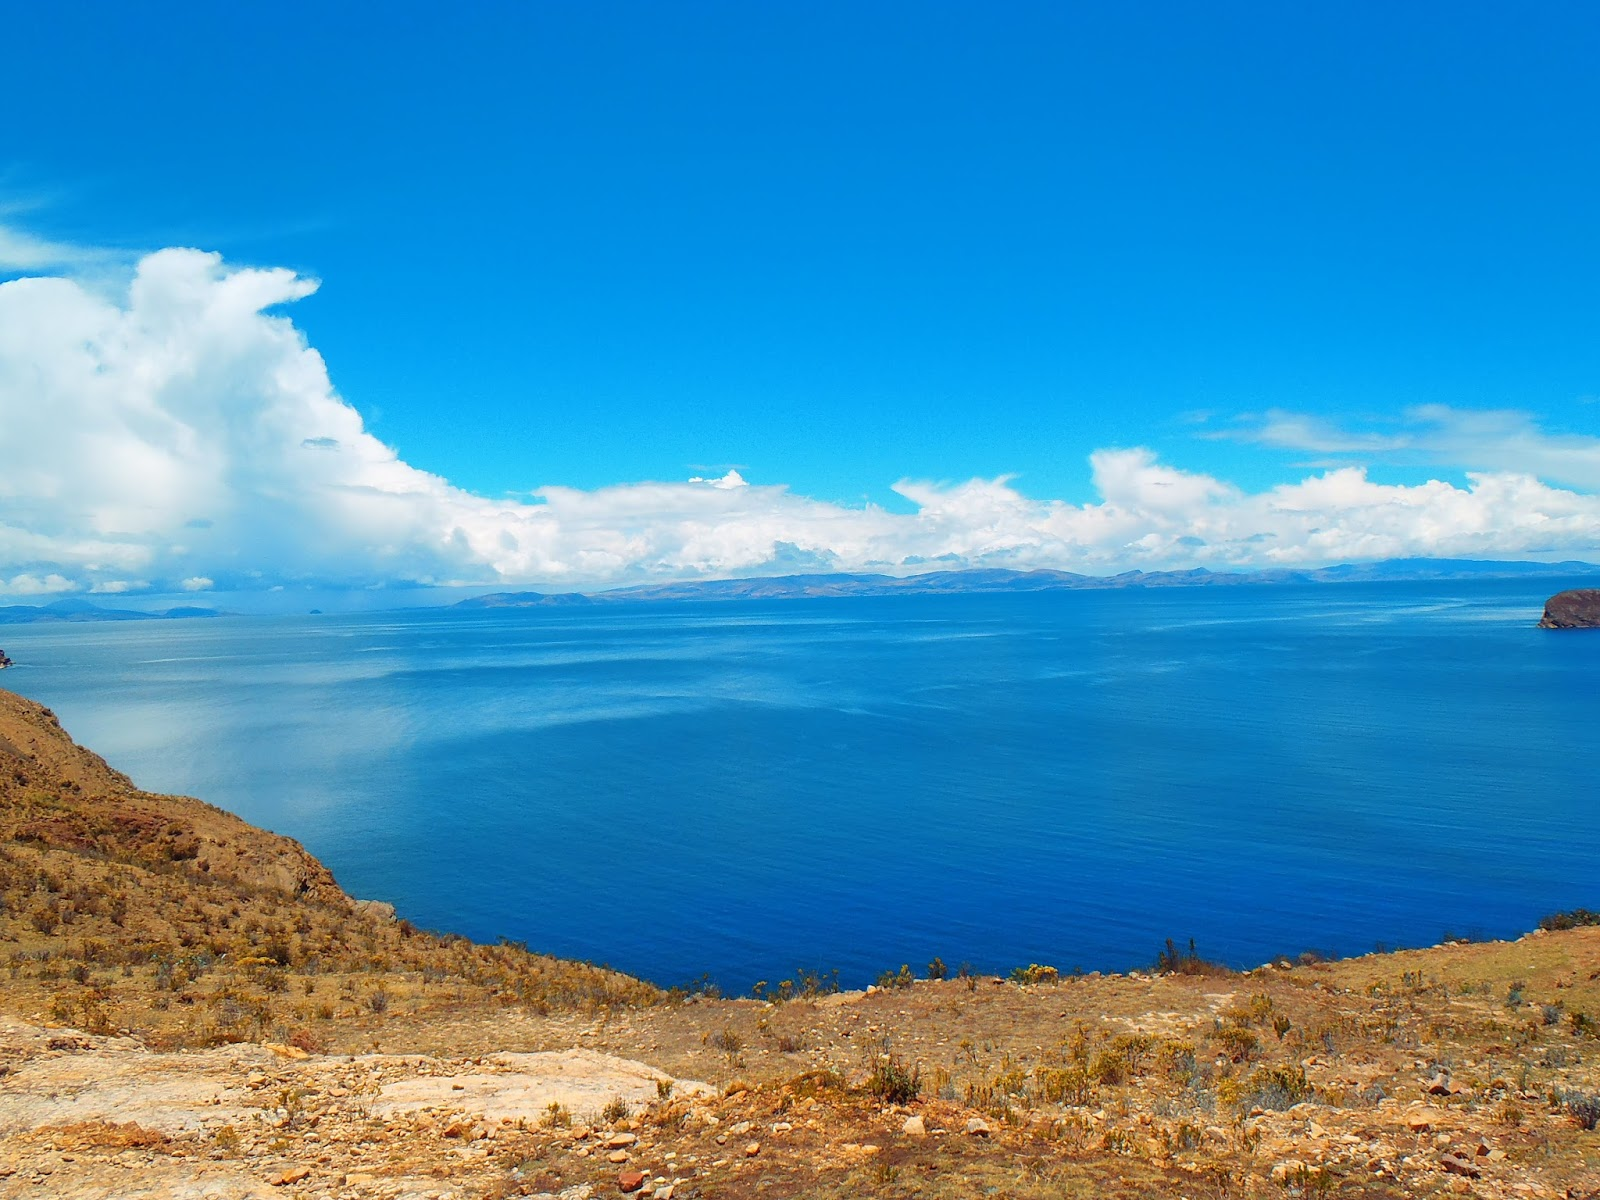 Views of Lake Titicaca from Isla del Sol